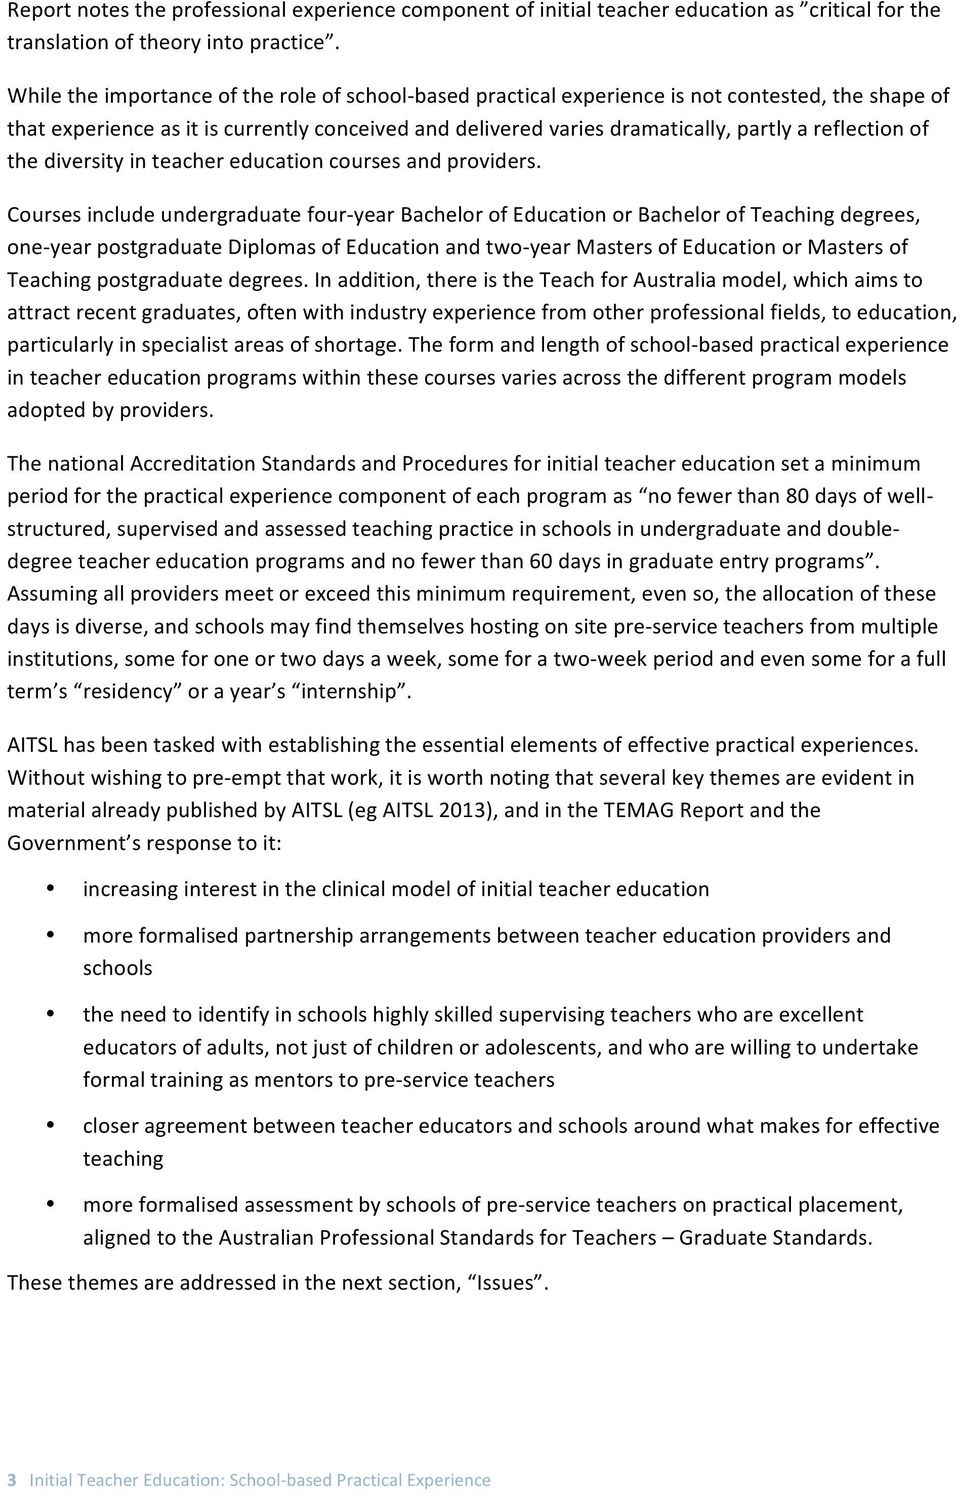 reflection of the diversity in teacher education courses and providers.